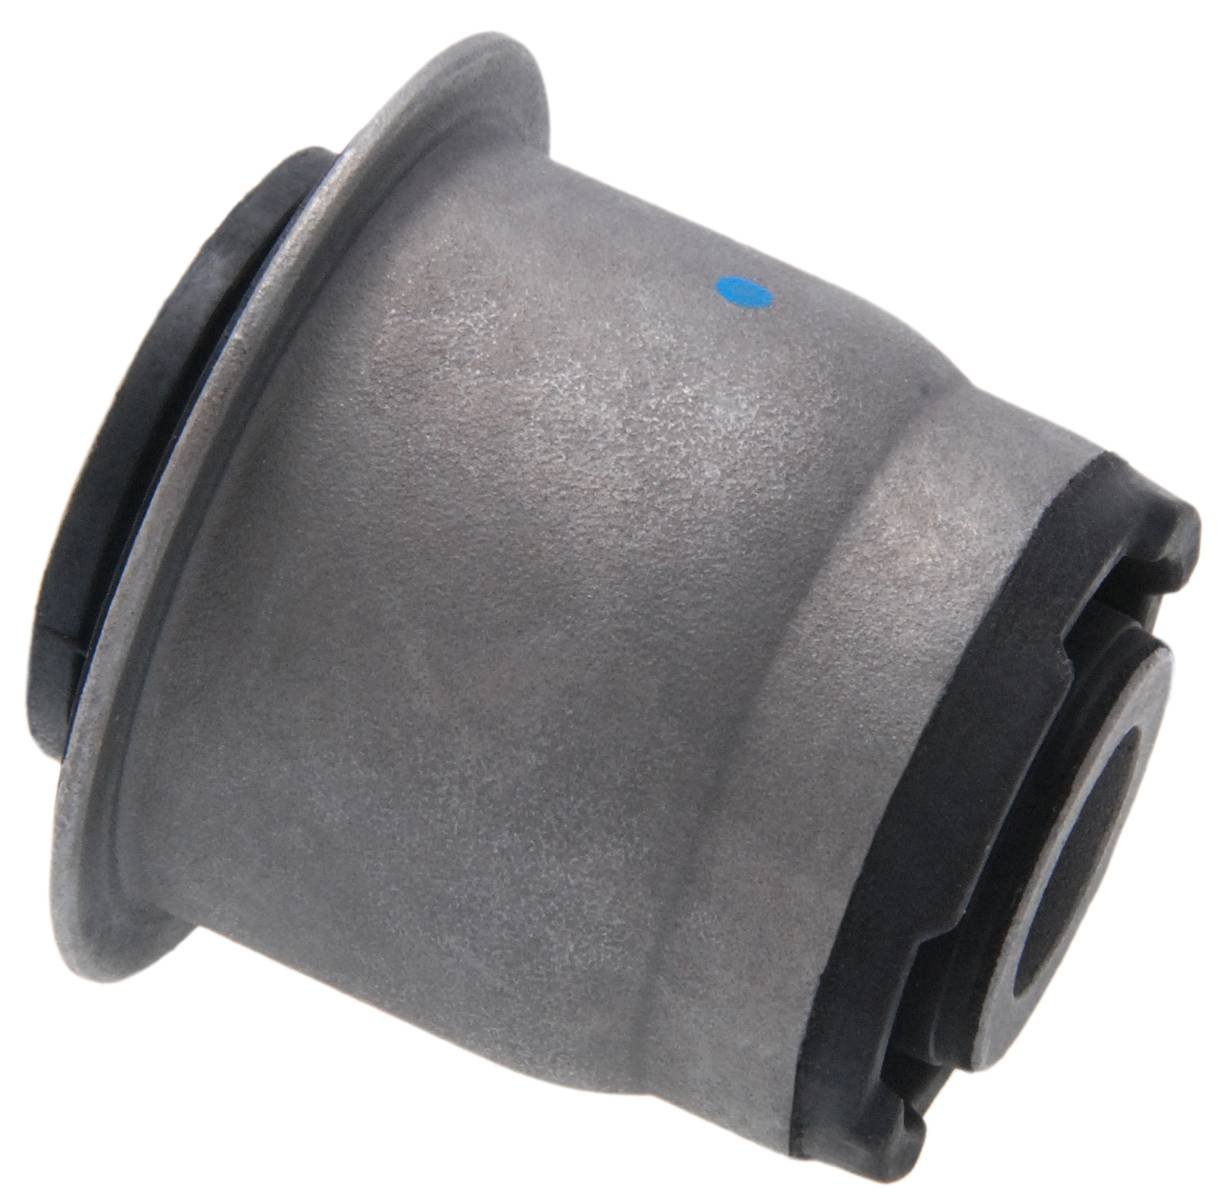 54400Ca000 - Front Body Bushing For Nissan - Febest by Febest (Image #1)